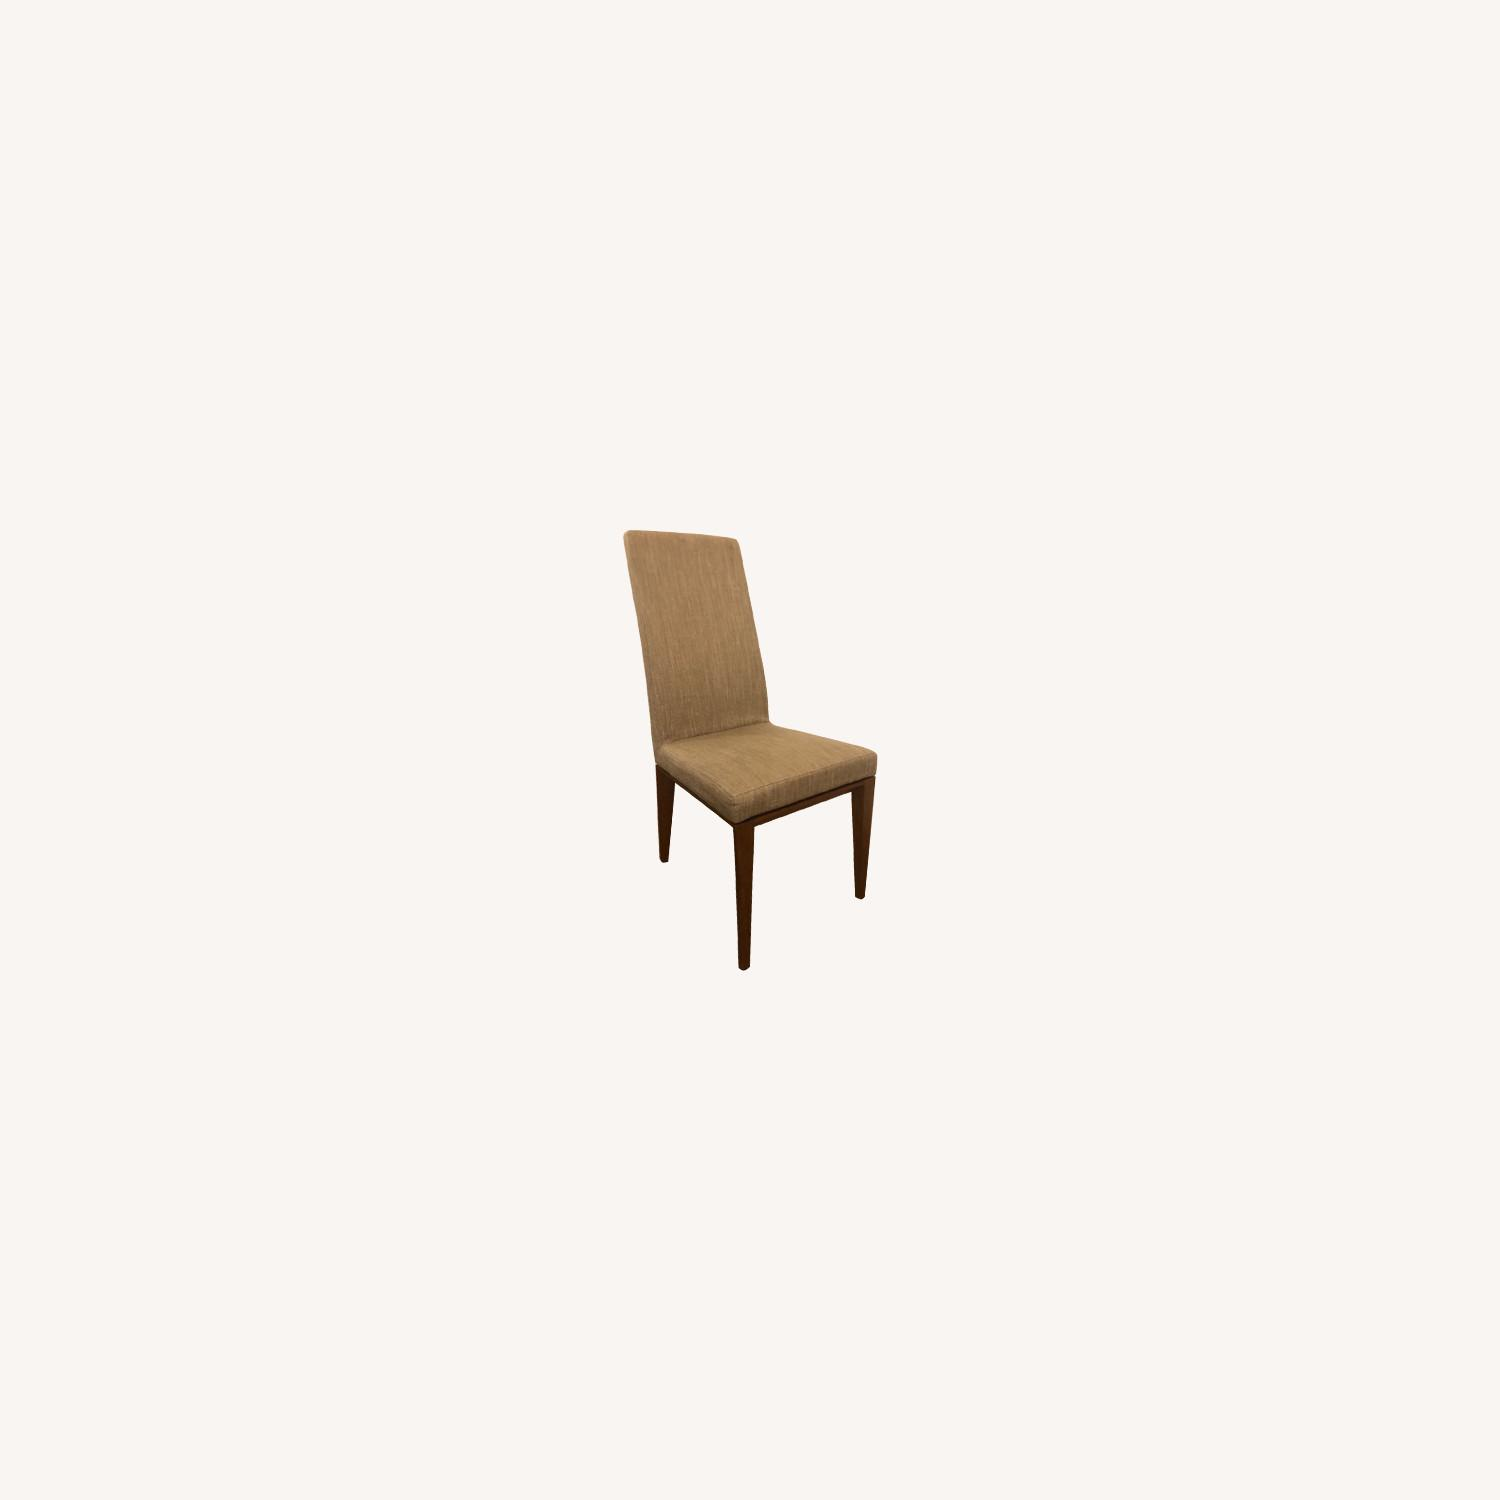 Calligaris Upholstered Dining Room Chairs - image-0